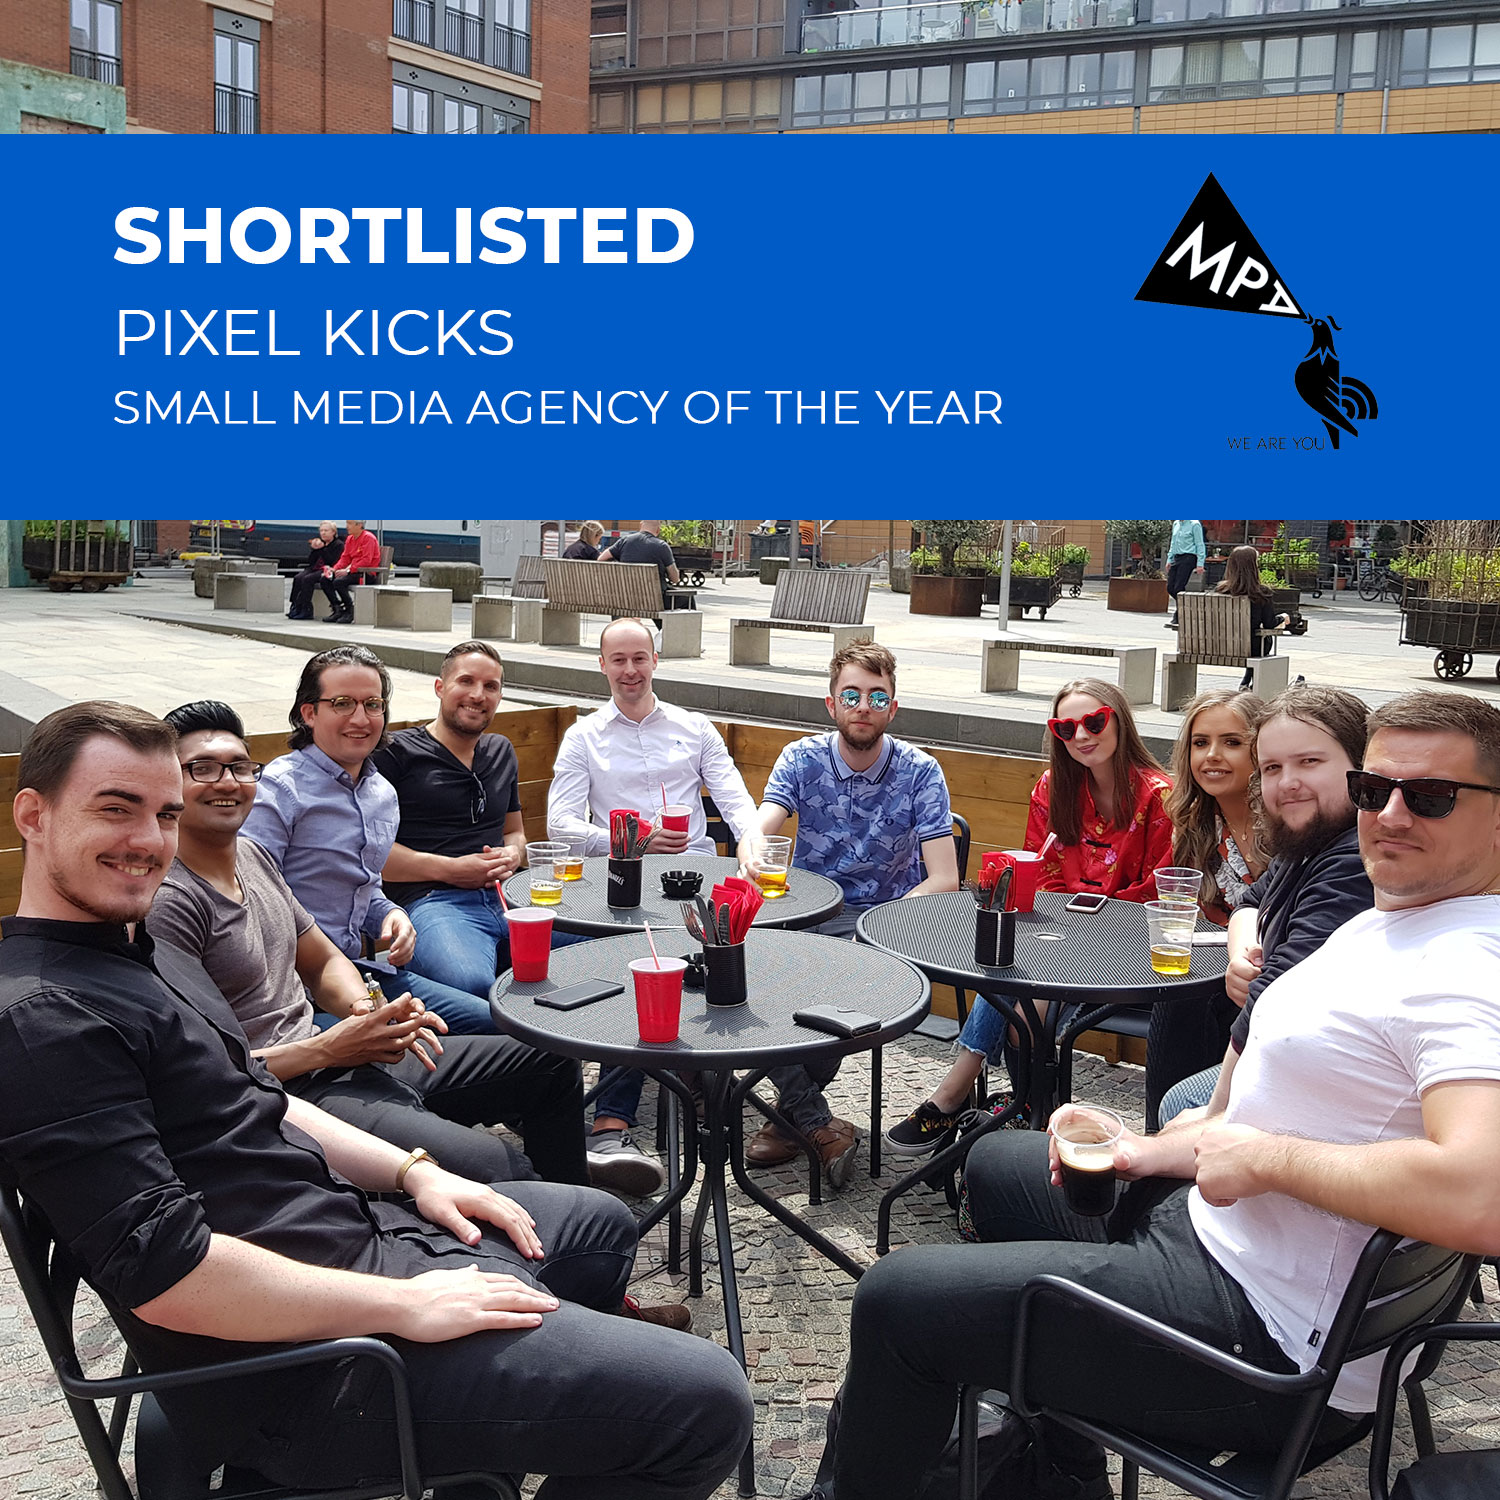 Pixel Kicks shortlisted for small media agency of the year | MPA Awards